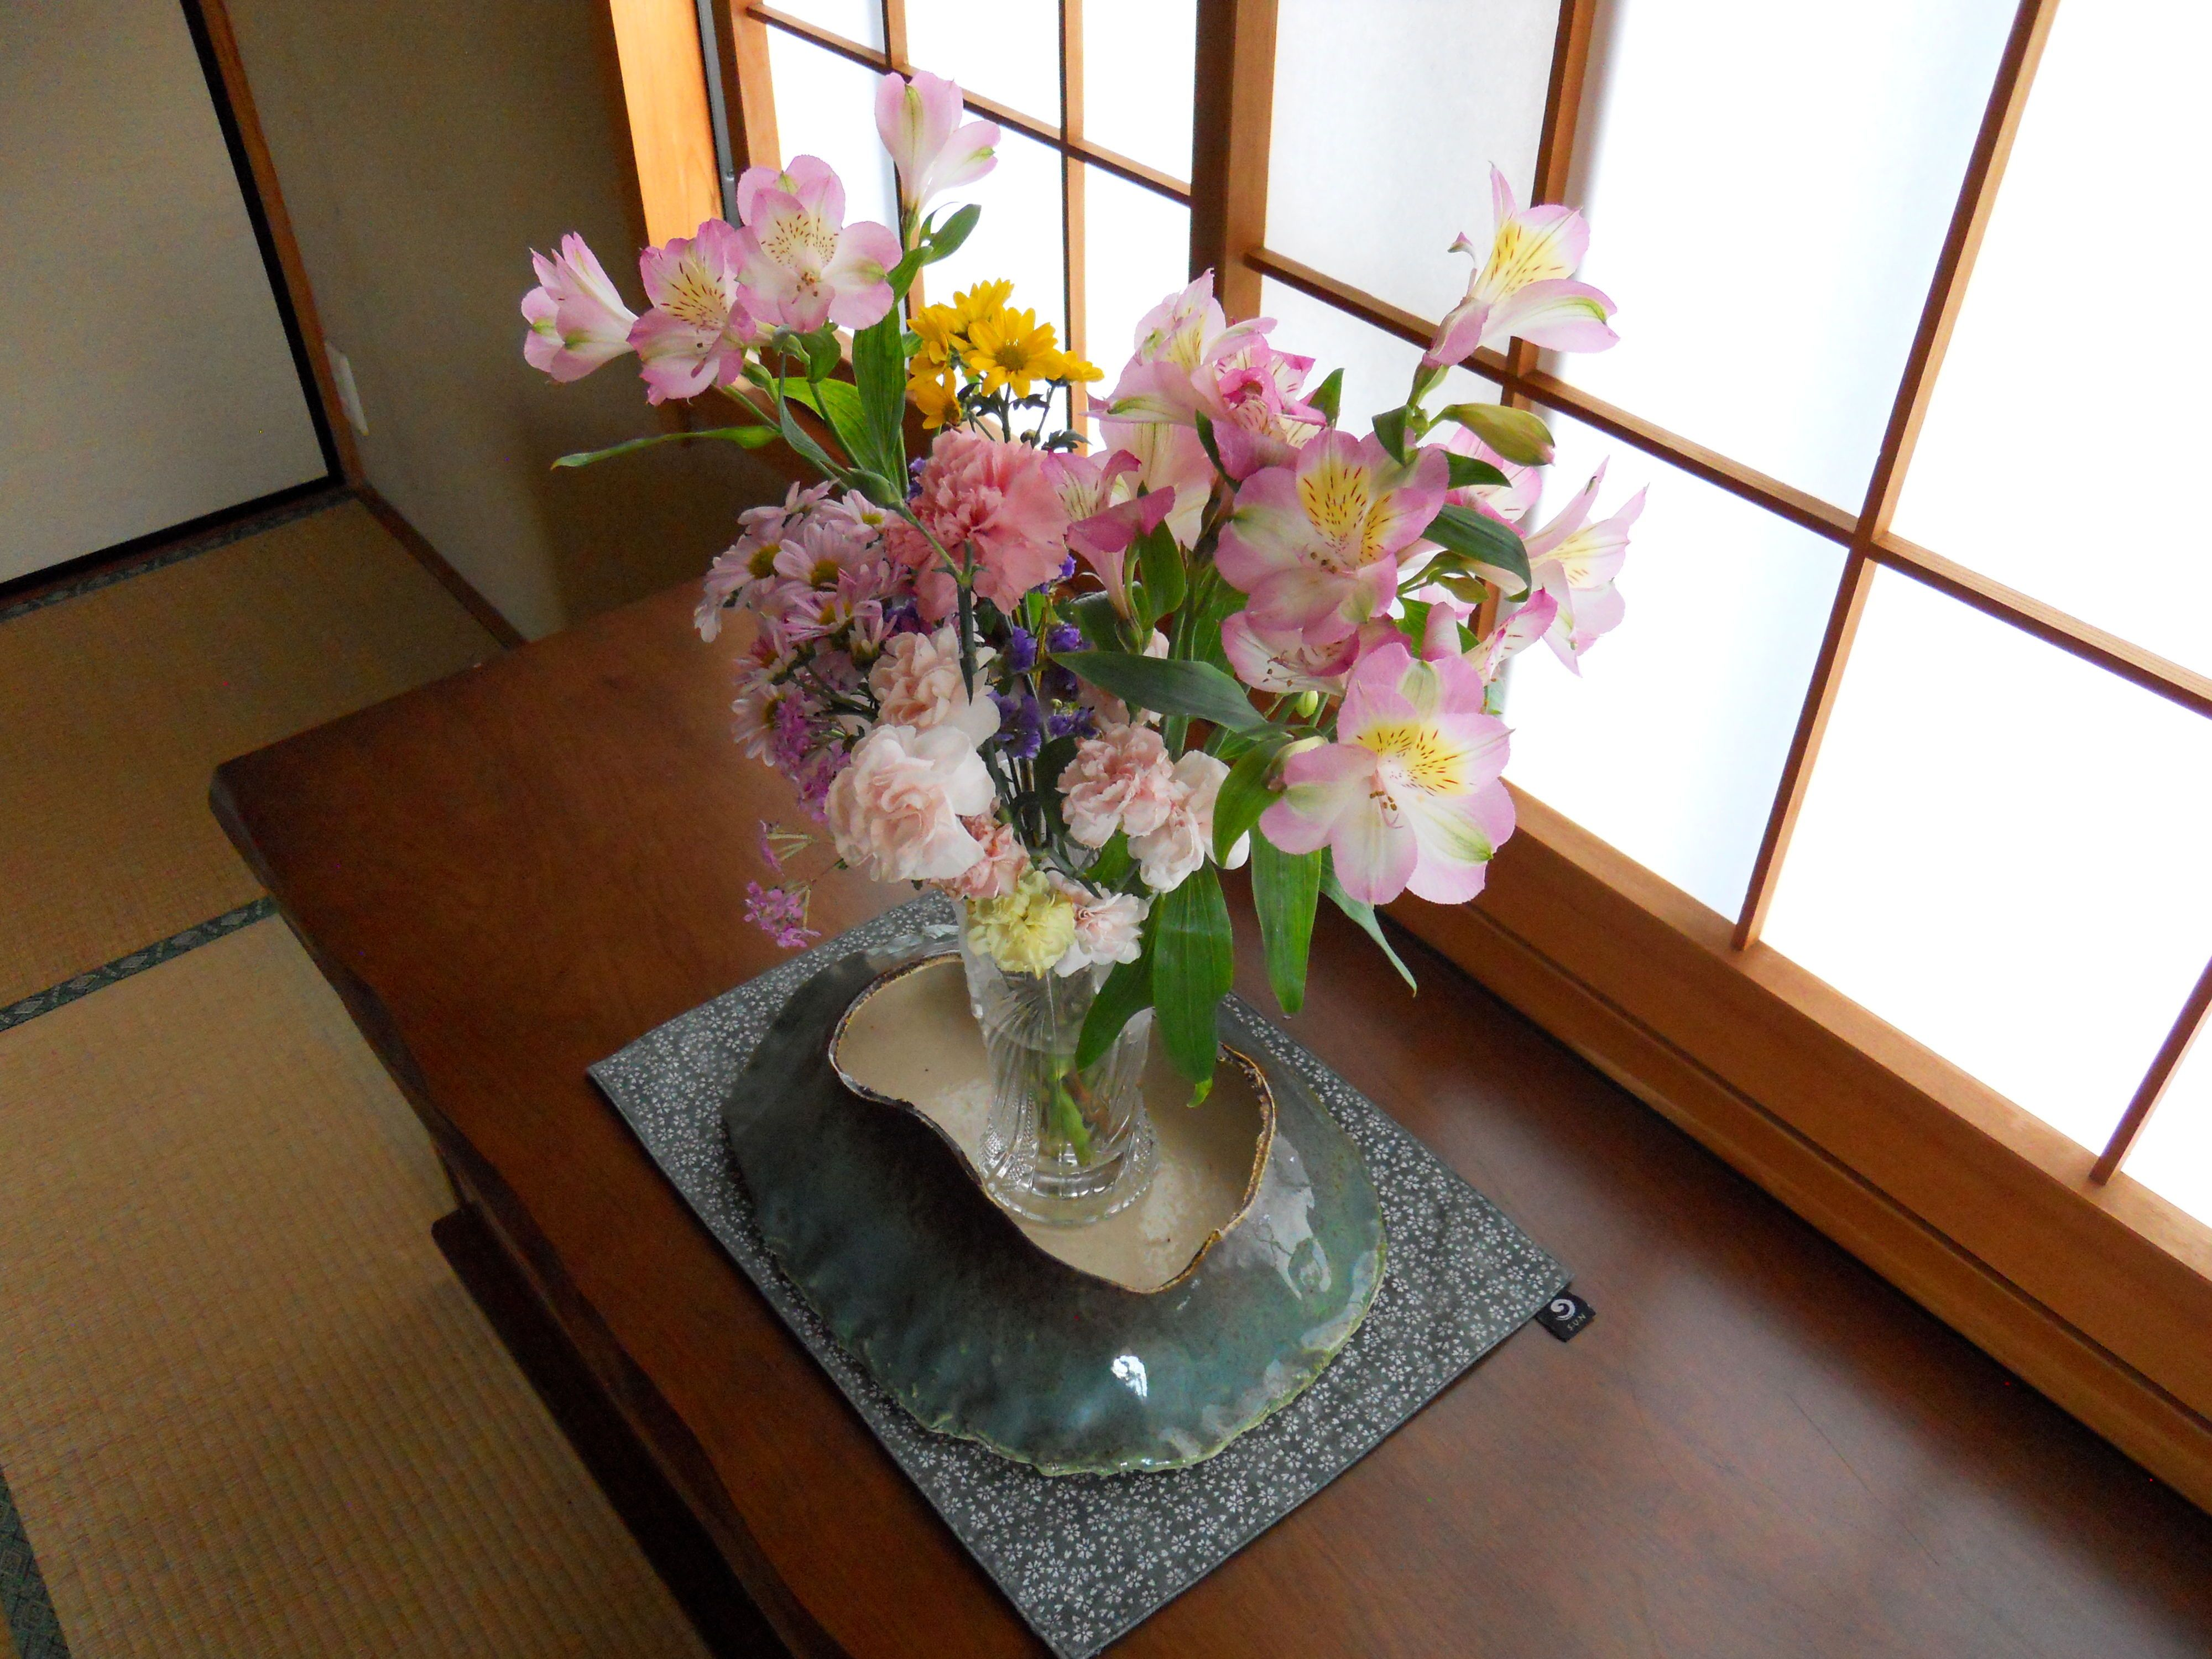 Flowers in the room